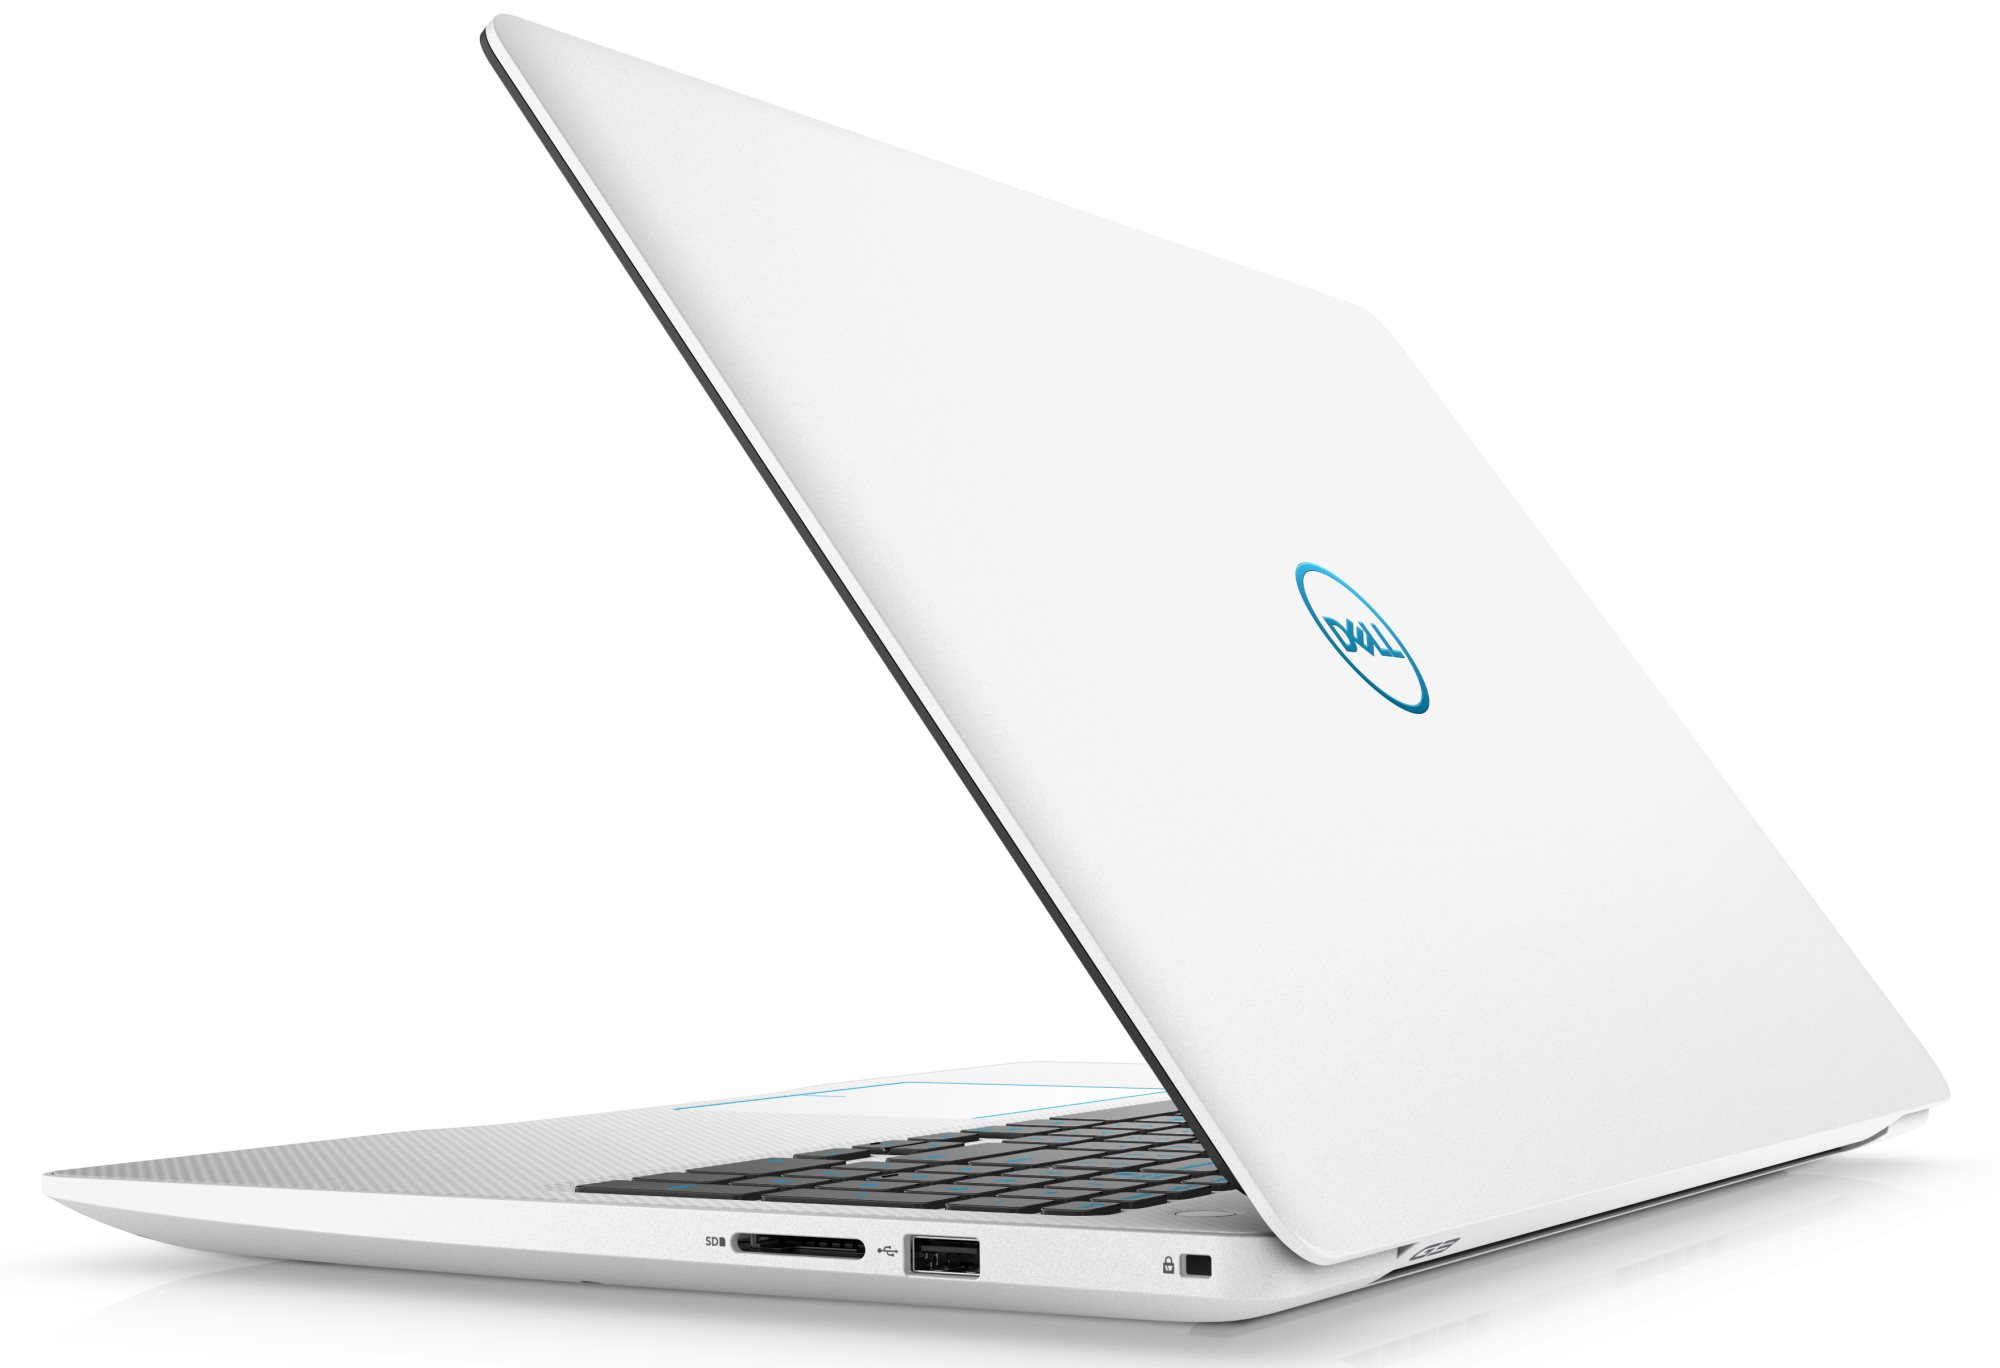 Dell G3 15 Gaming Laptop Review Stg